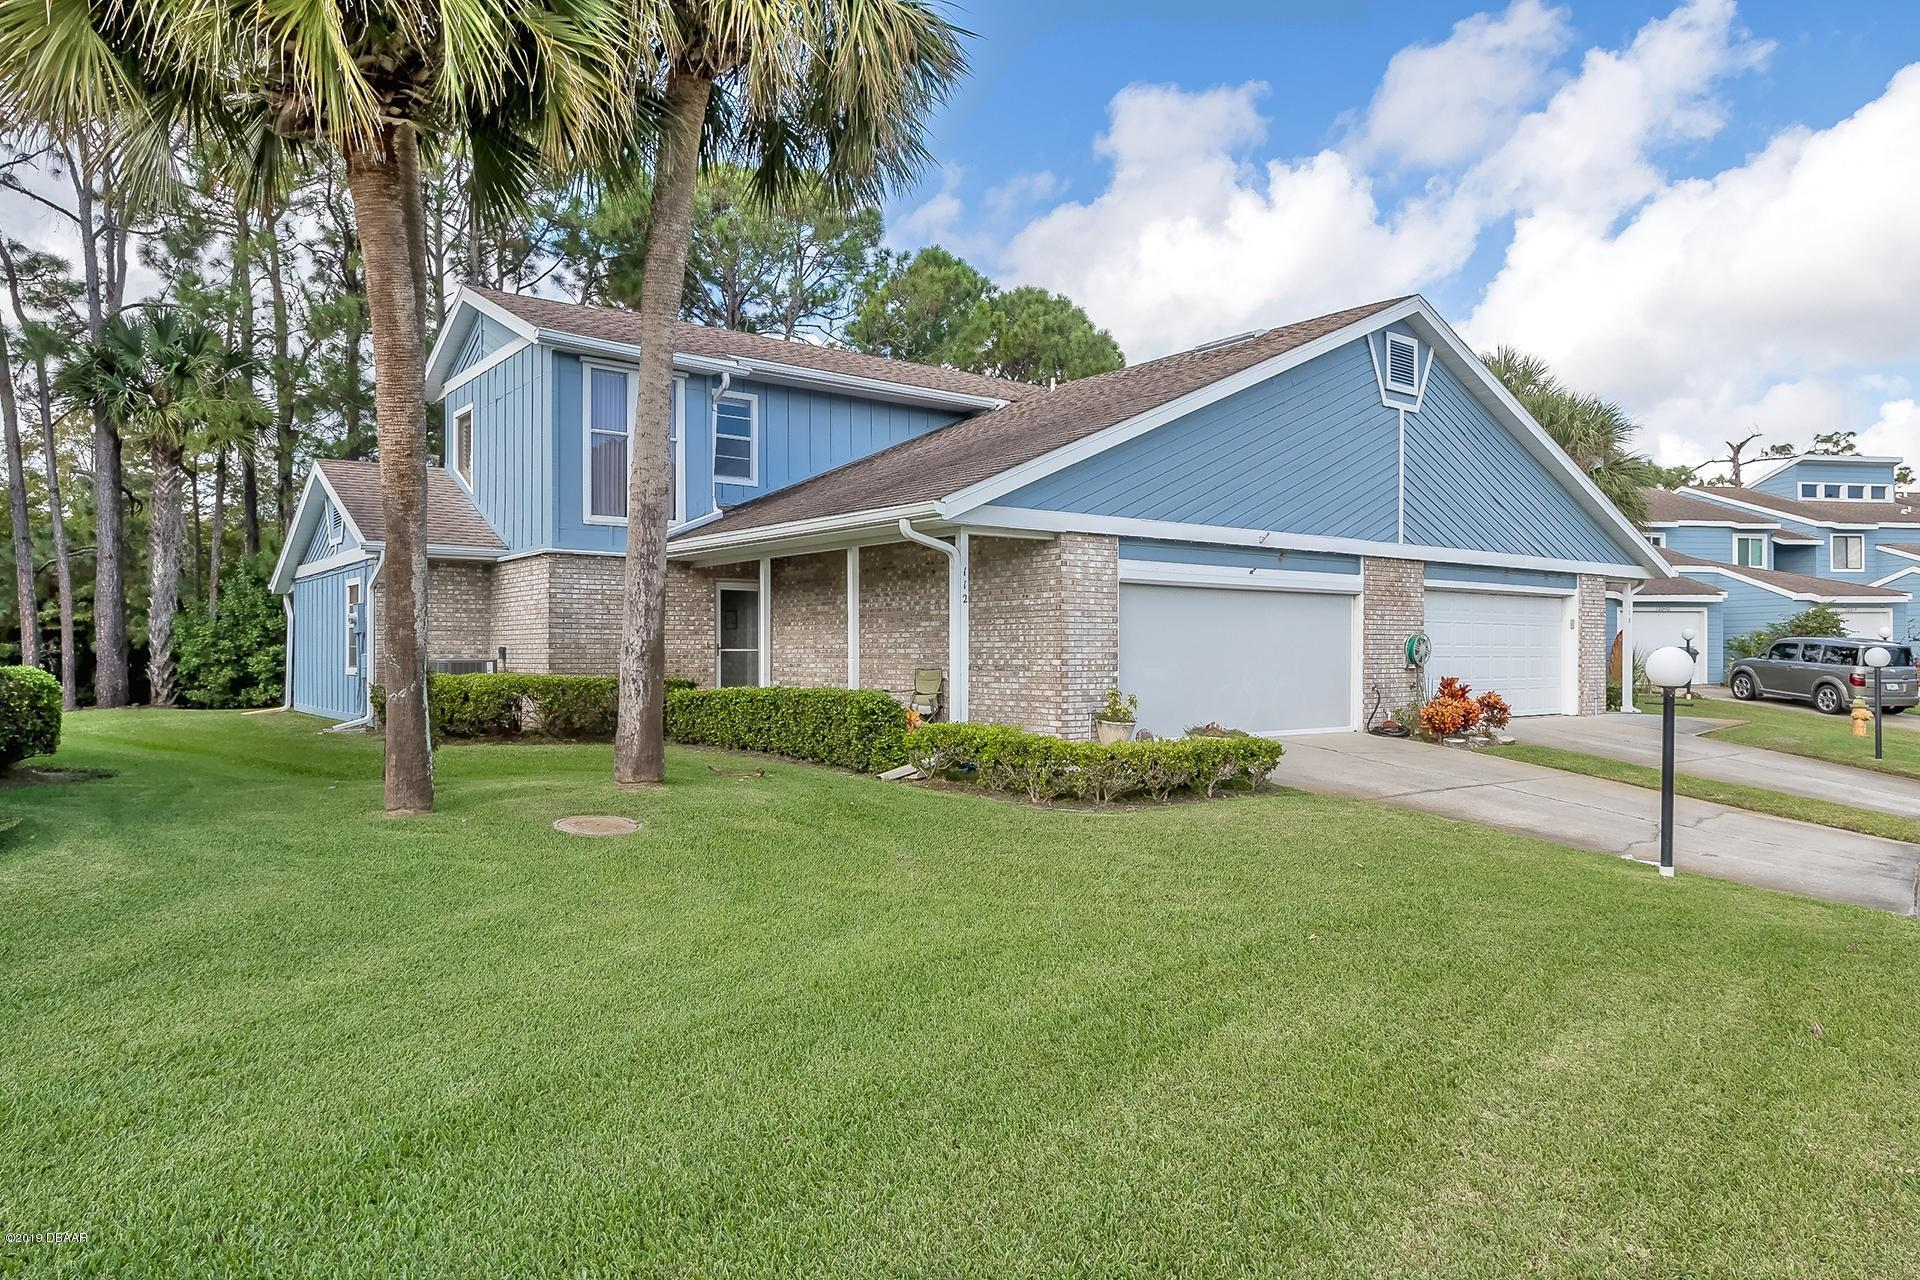 112 Kingbird Cir, one of homes for sale in South Daytona